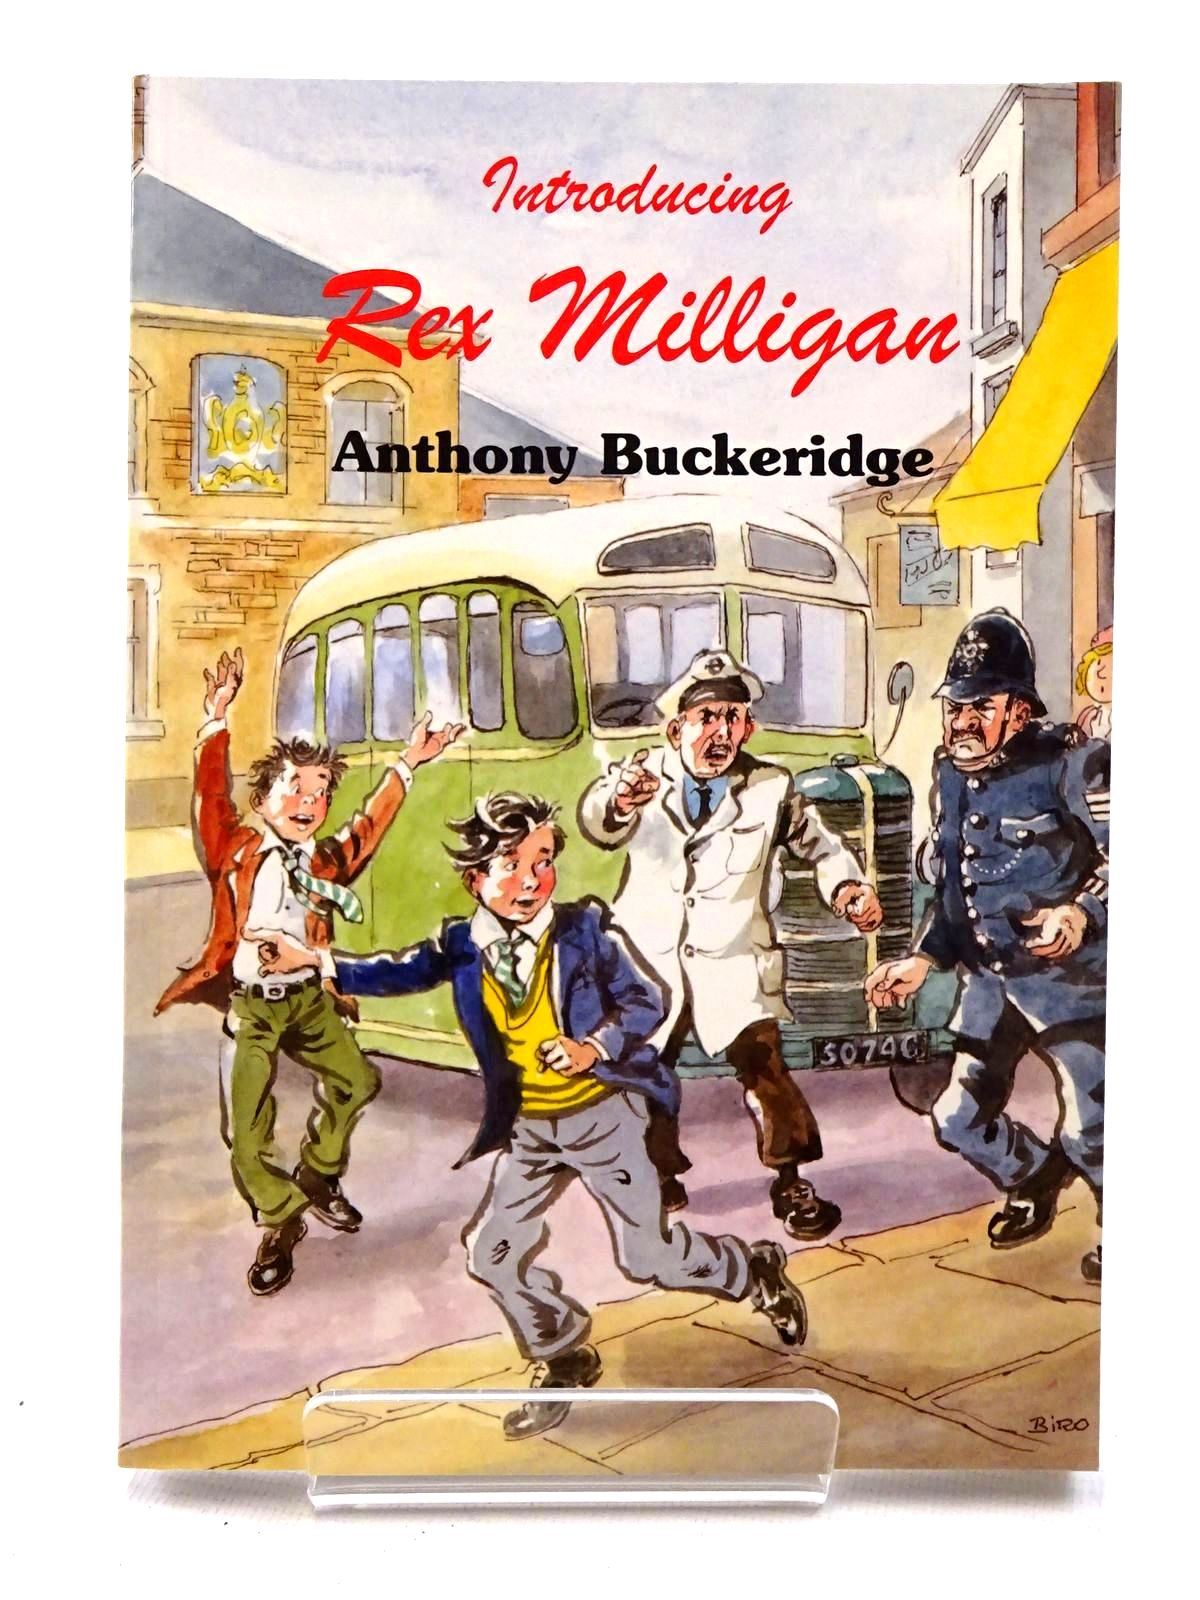 Photo of INTRODUCING REX MILLIGAN written by Buckeridge, Anthony illustrated by Biro, Val published by David Schutte (STOCK CODE: 2124425)  for sale by Stella & Rose's Books